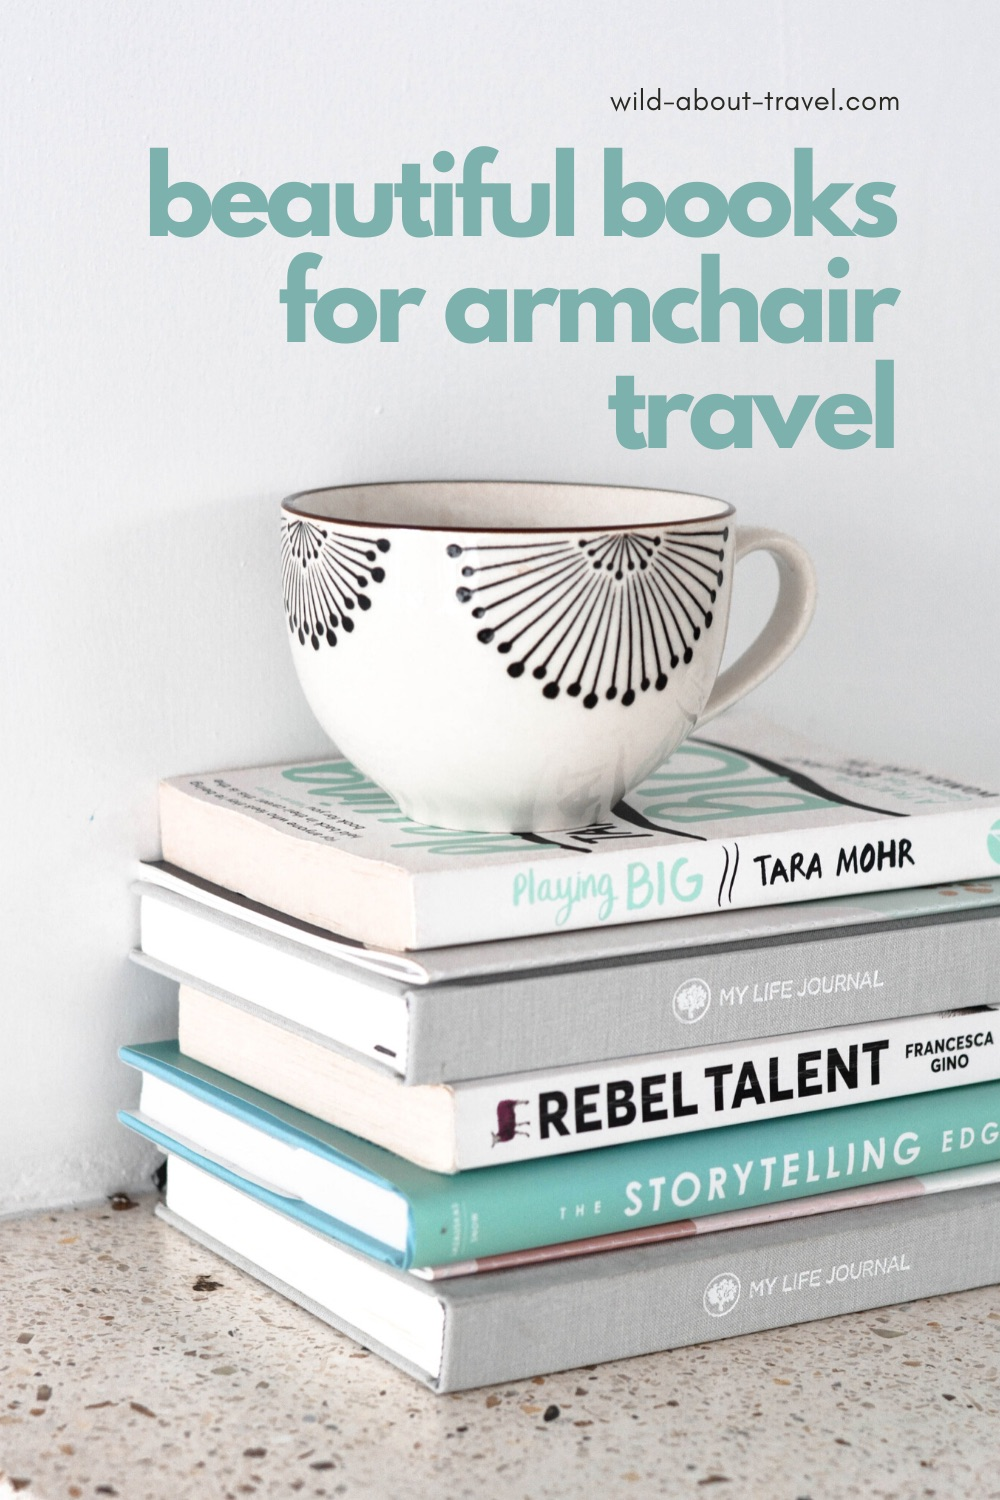 Books for armchair travel